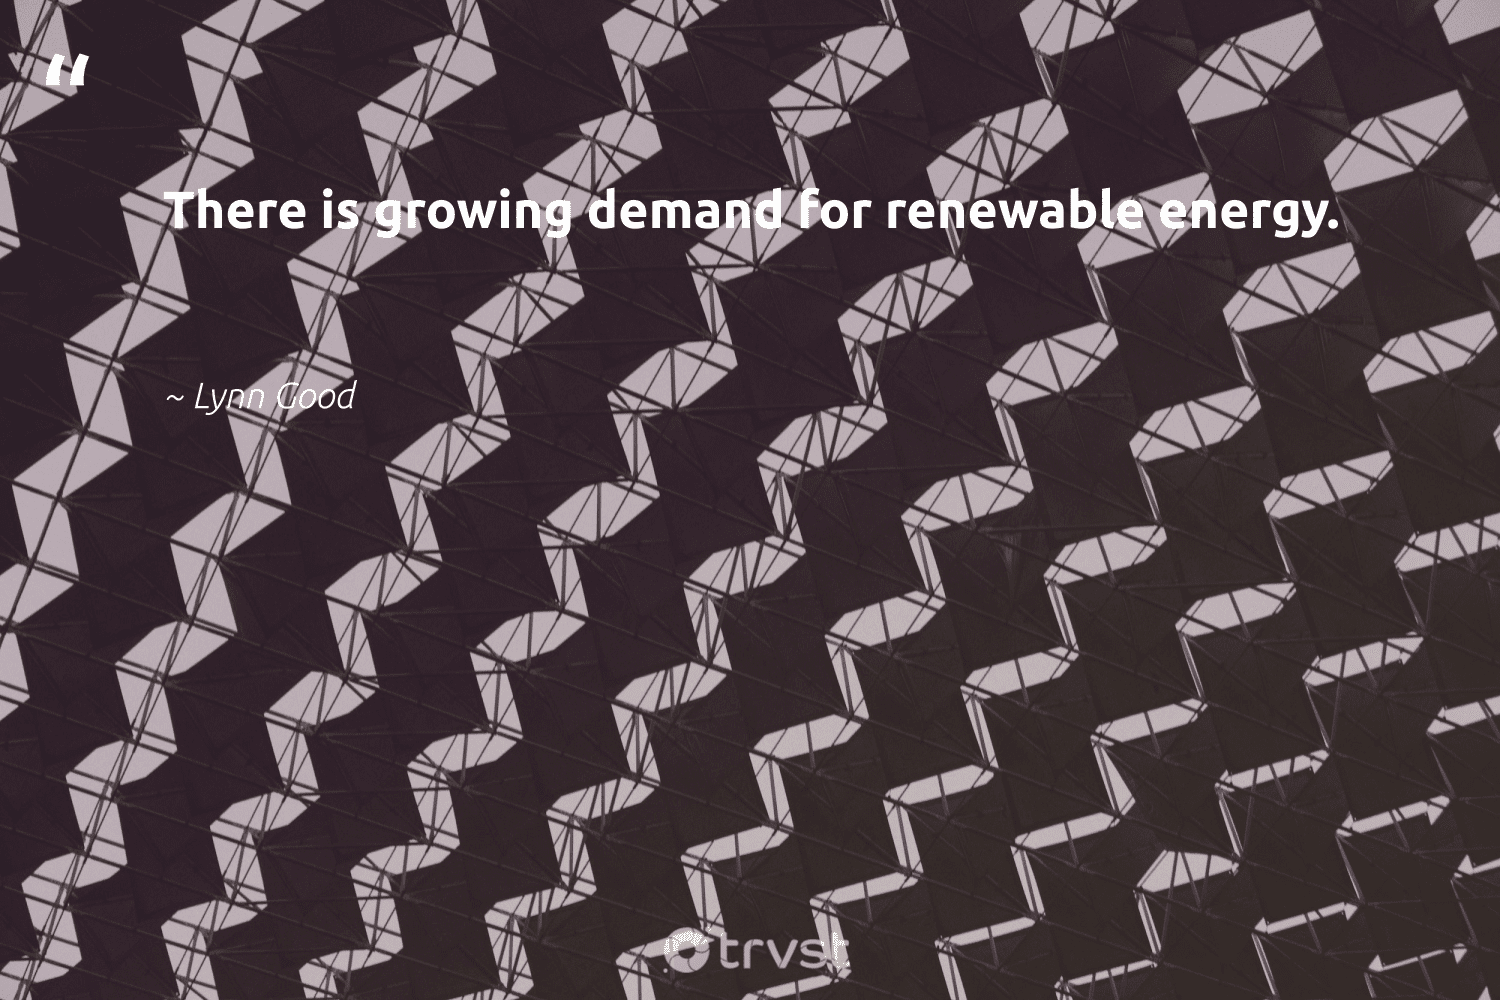 """""""There is growing demand for renewable energy.""""  - Lynn Good #trvst #quotes #renewableenergy #energy #renewable #100percentclean #lowcarbon #green #sustainable #dogood #affordable #greenenergy"""